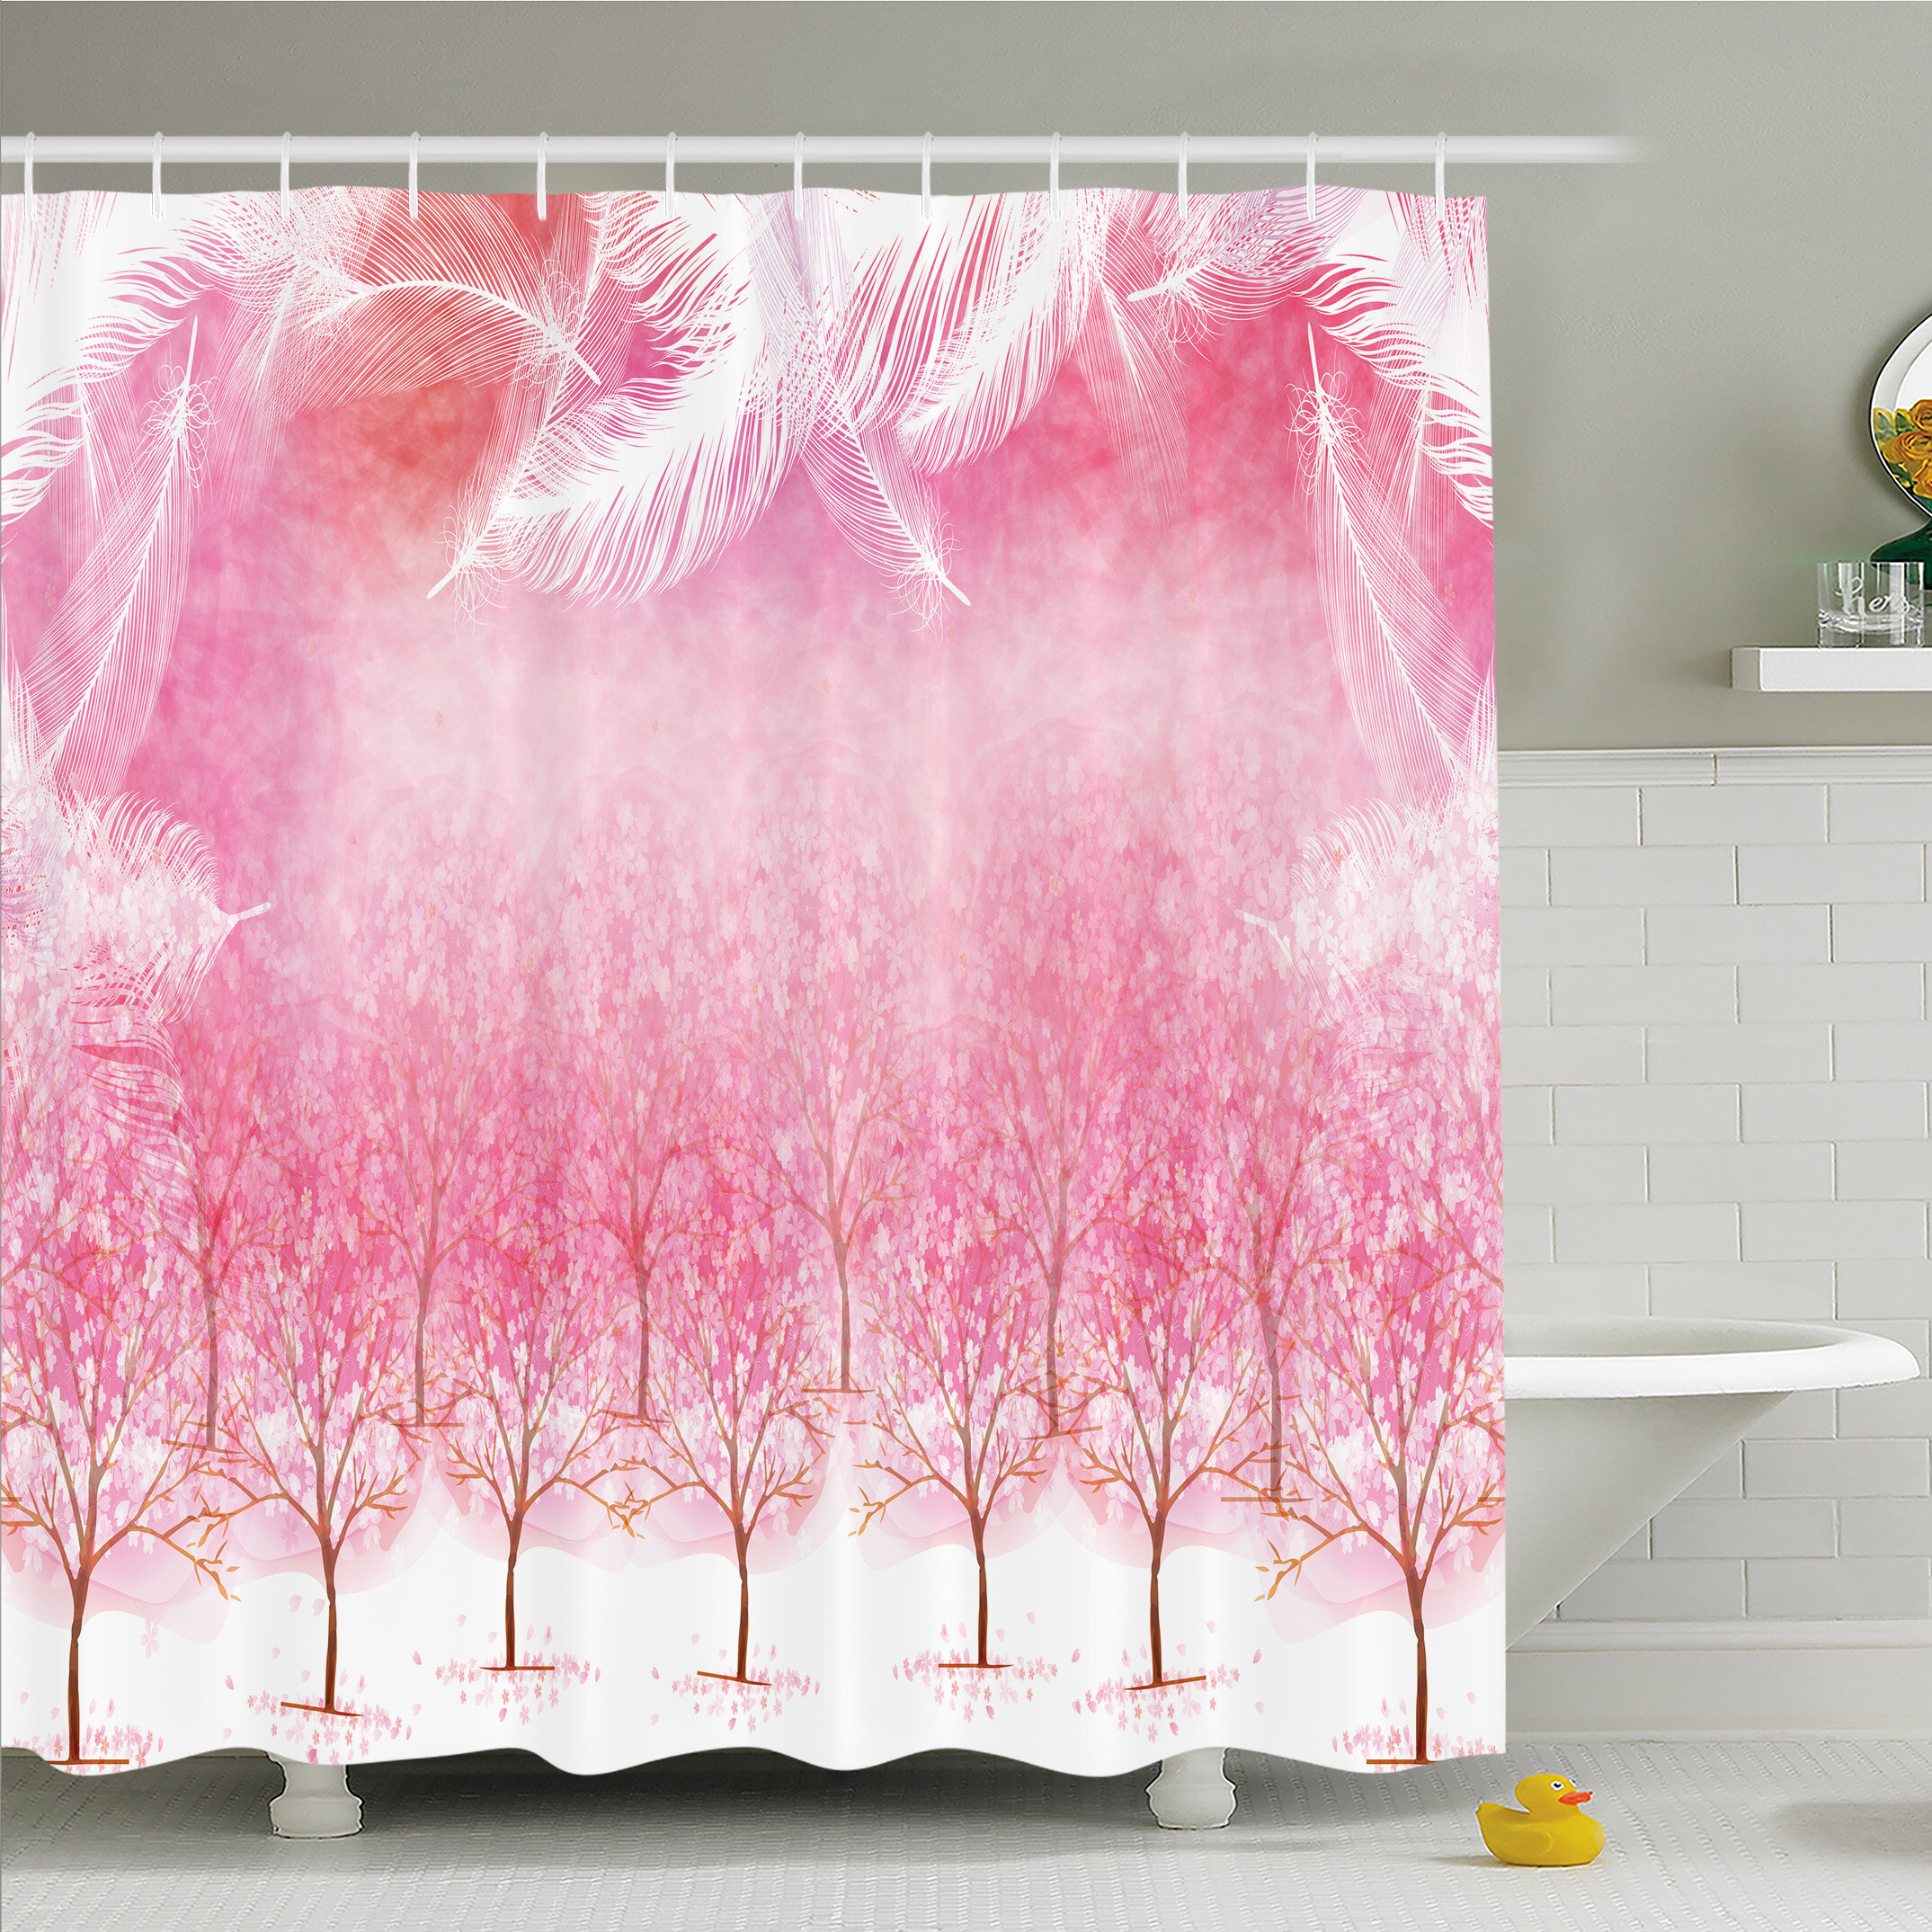 East Urban Home Hazy Japanese Cherry Blossom Trees Shower Curtain Set